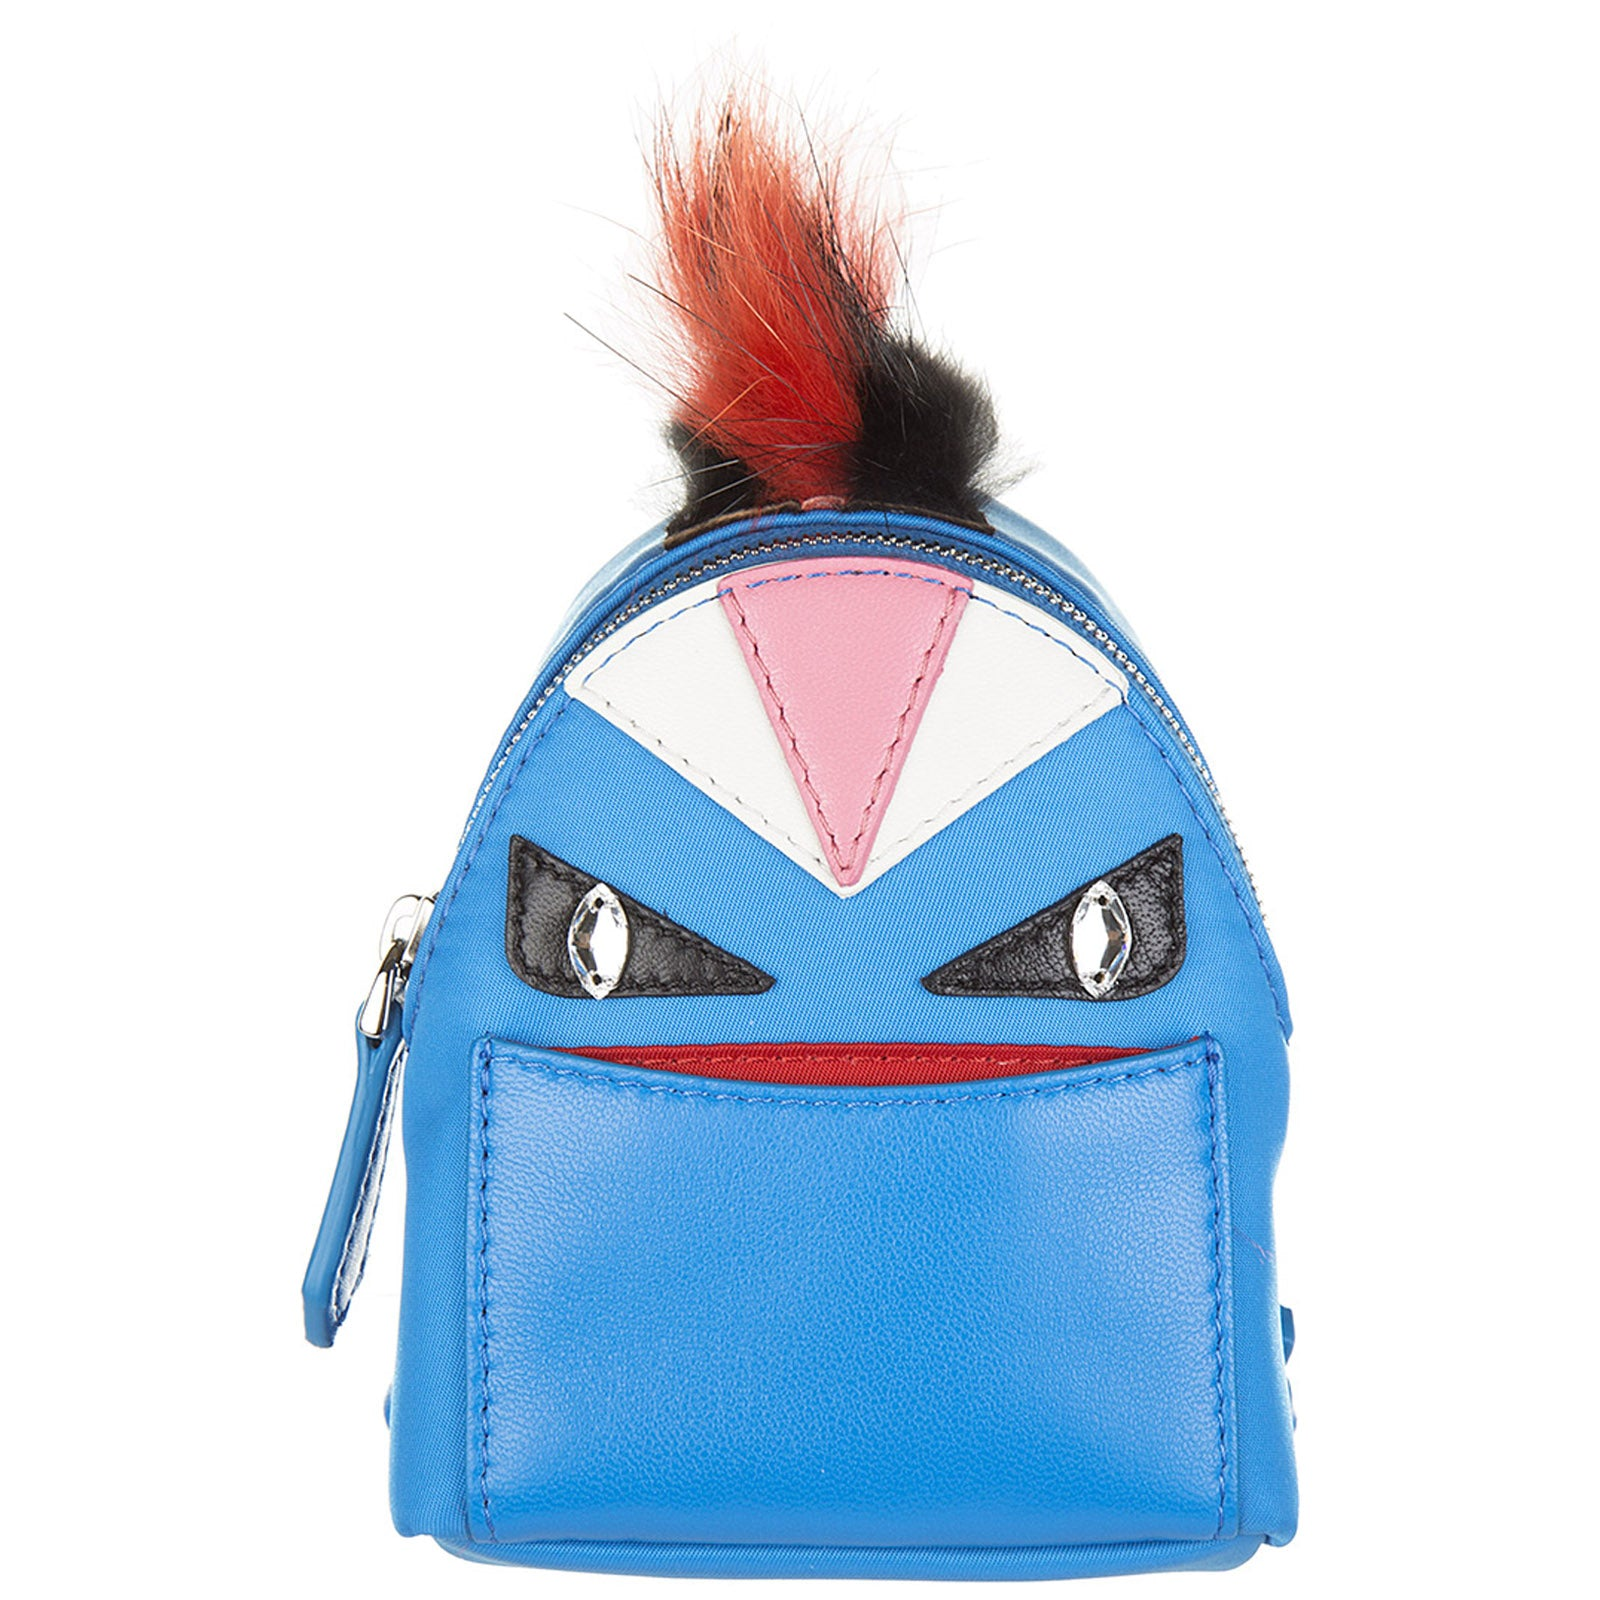 5d9922ad5286 Fendi Bag Bugs Backpack Charm In Blue